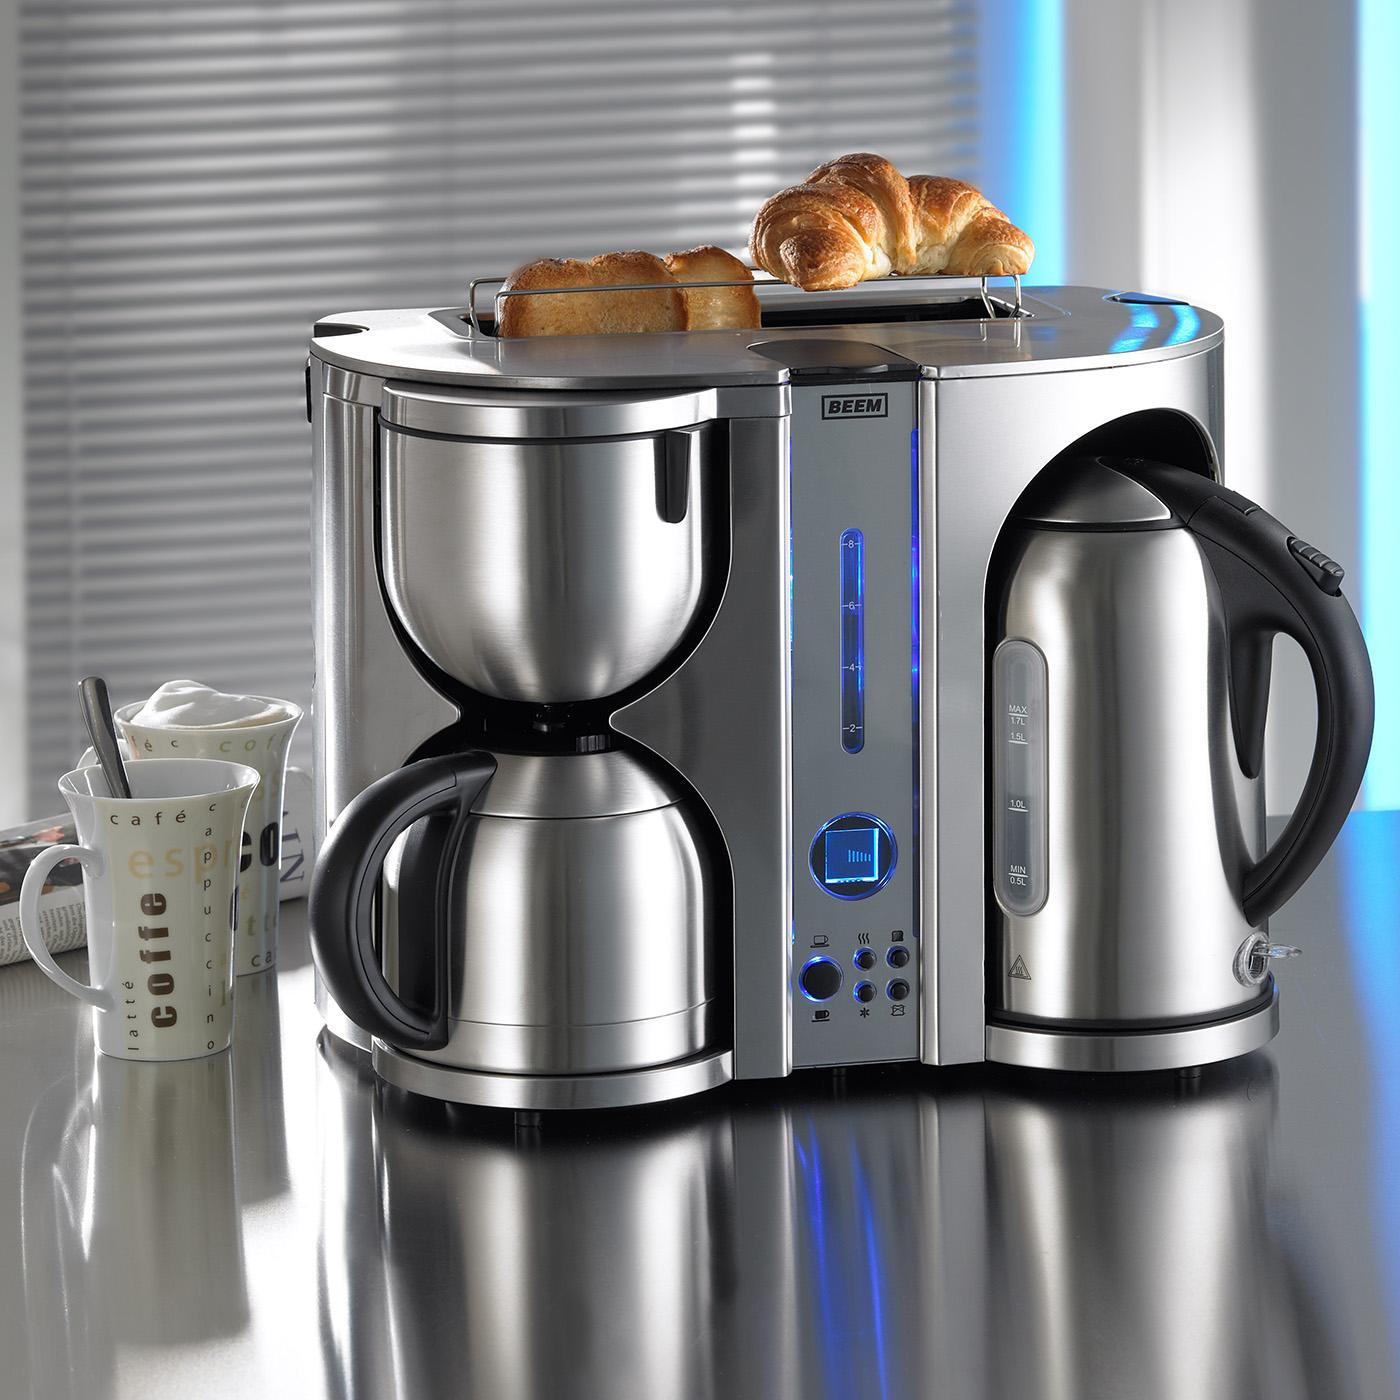 beem germany 4 in 1 ecco deluxe breakfast machine 1 7 litre 3800 watt kitchen. Black Bedroom Furniture Sets. Home Design Ideas